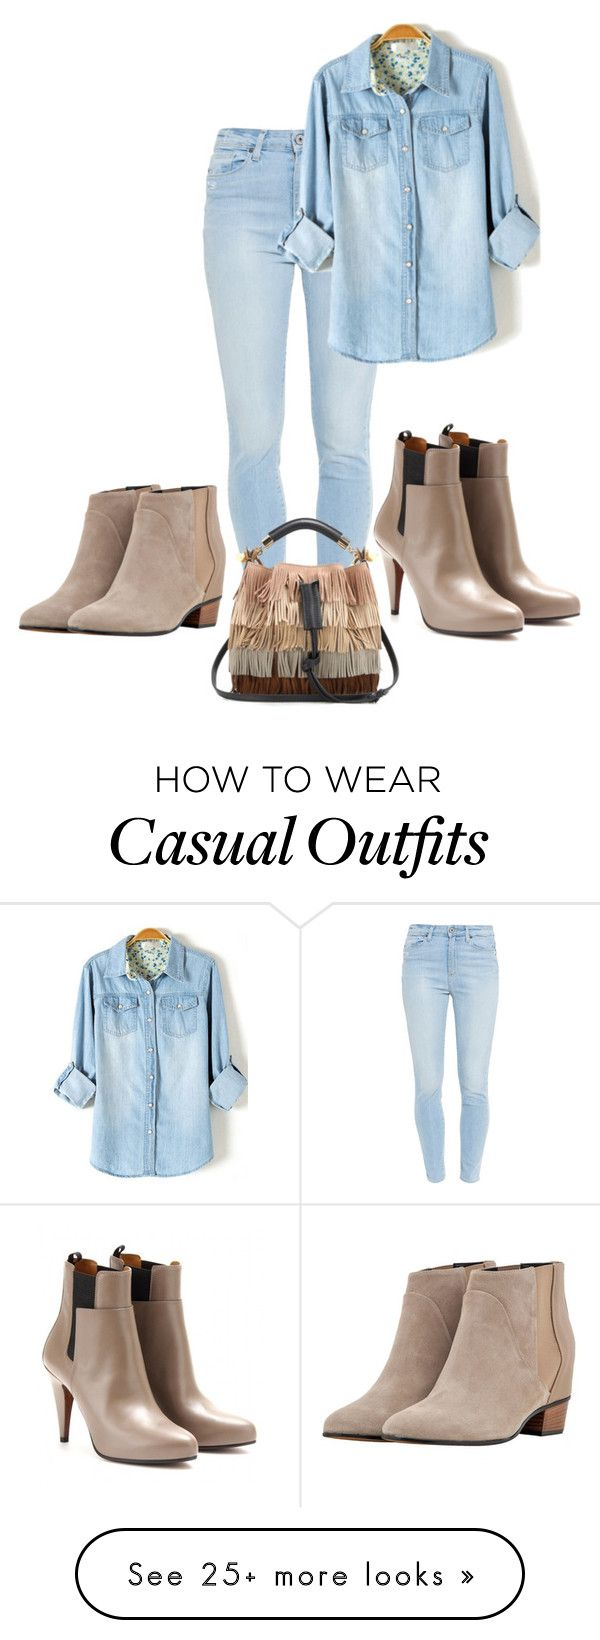 """""""Either or both casual !"""" by le-lola on Polyvore featuring Paige Denim, Augusta, Balenciaga and Chloé"""